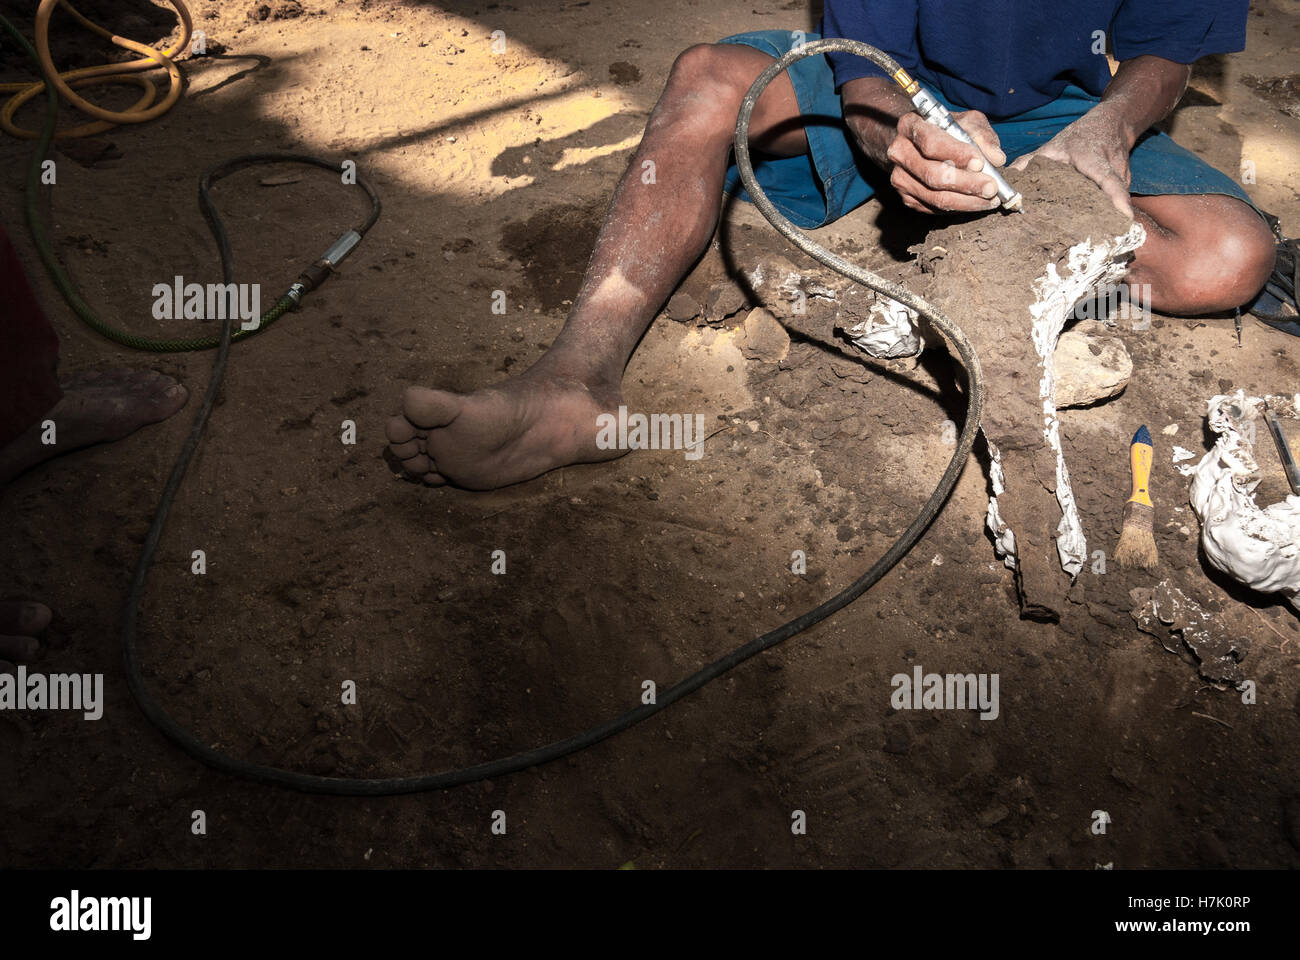 Worker is using air-abrasive tool to clean a wrapped fossil. - Stock Image